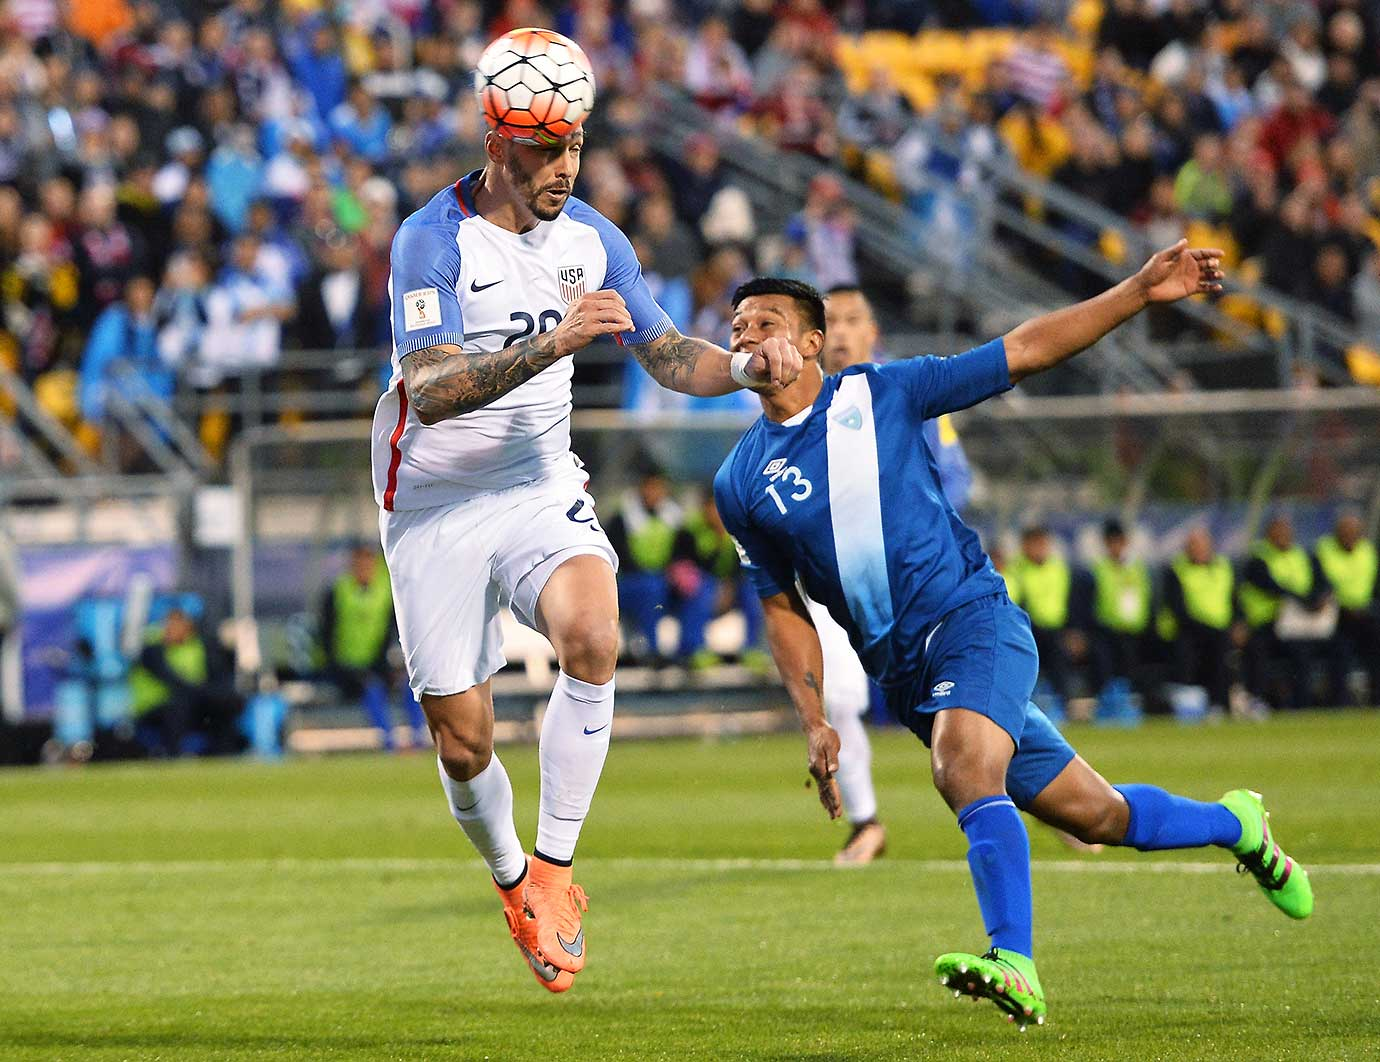 Geoff Cameron heads the ball off a free kick for a goal in front of Carlos Castrillo.